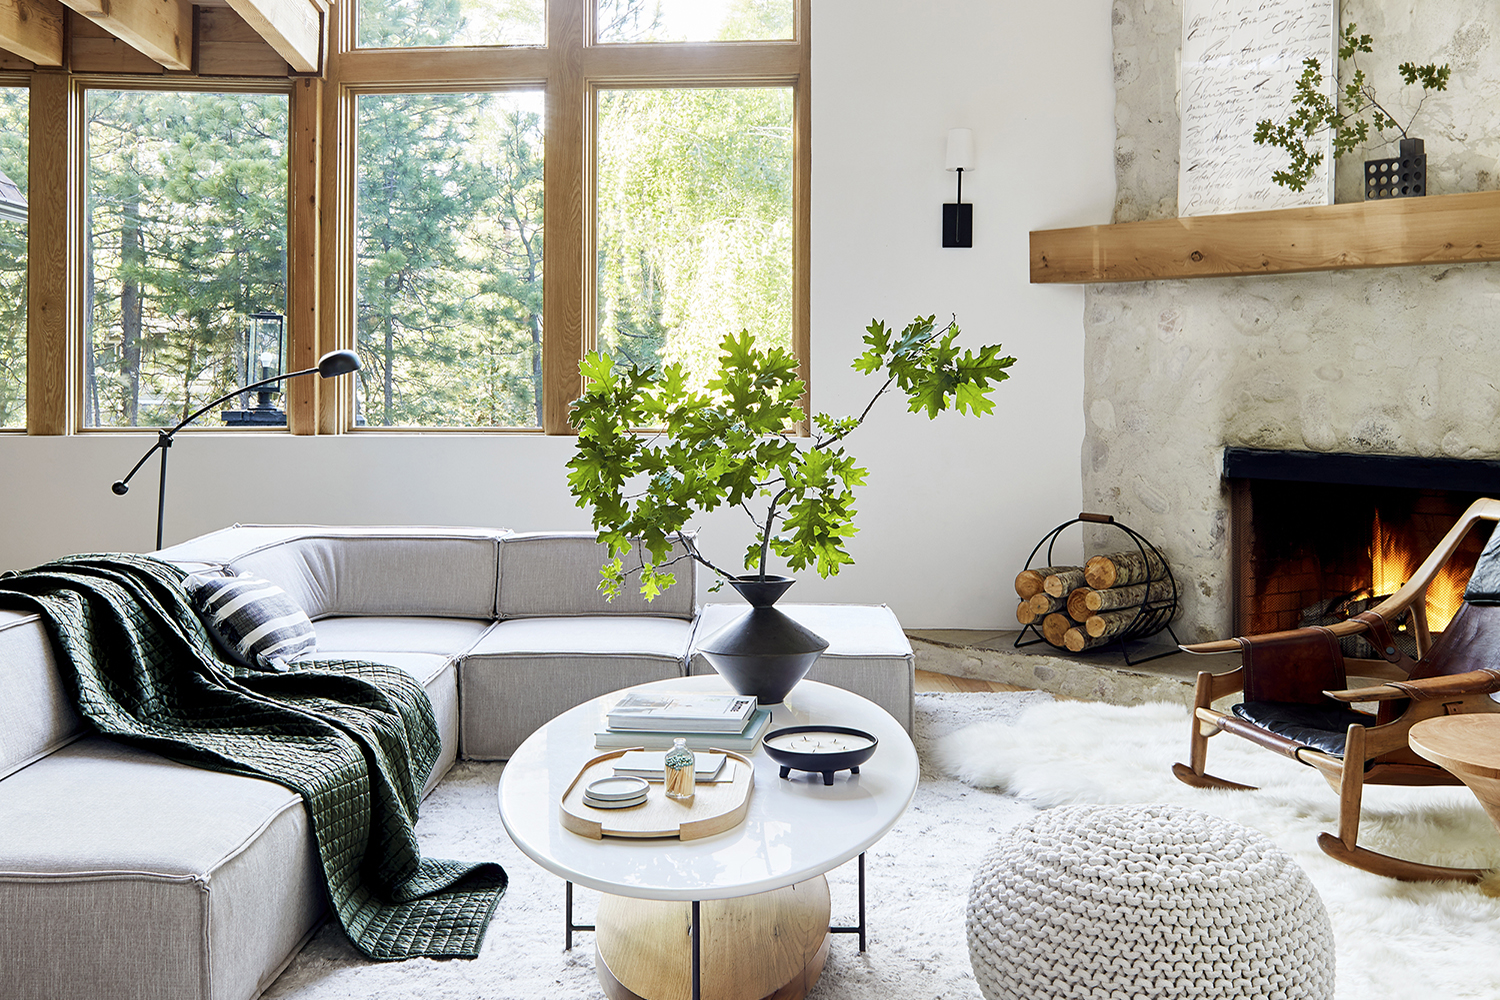 Design Pro Emily Henderson On How To Balance Comfort And Style When You Re Home 24 7